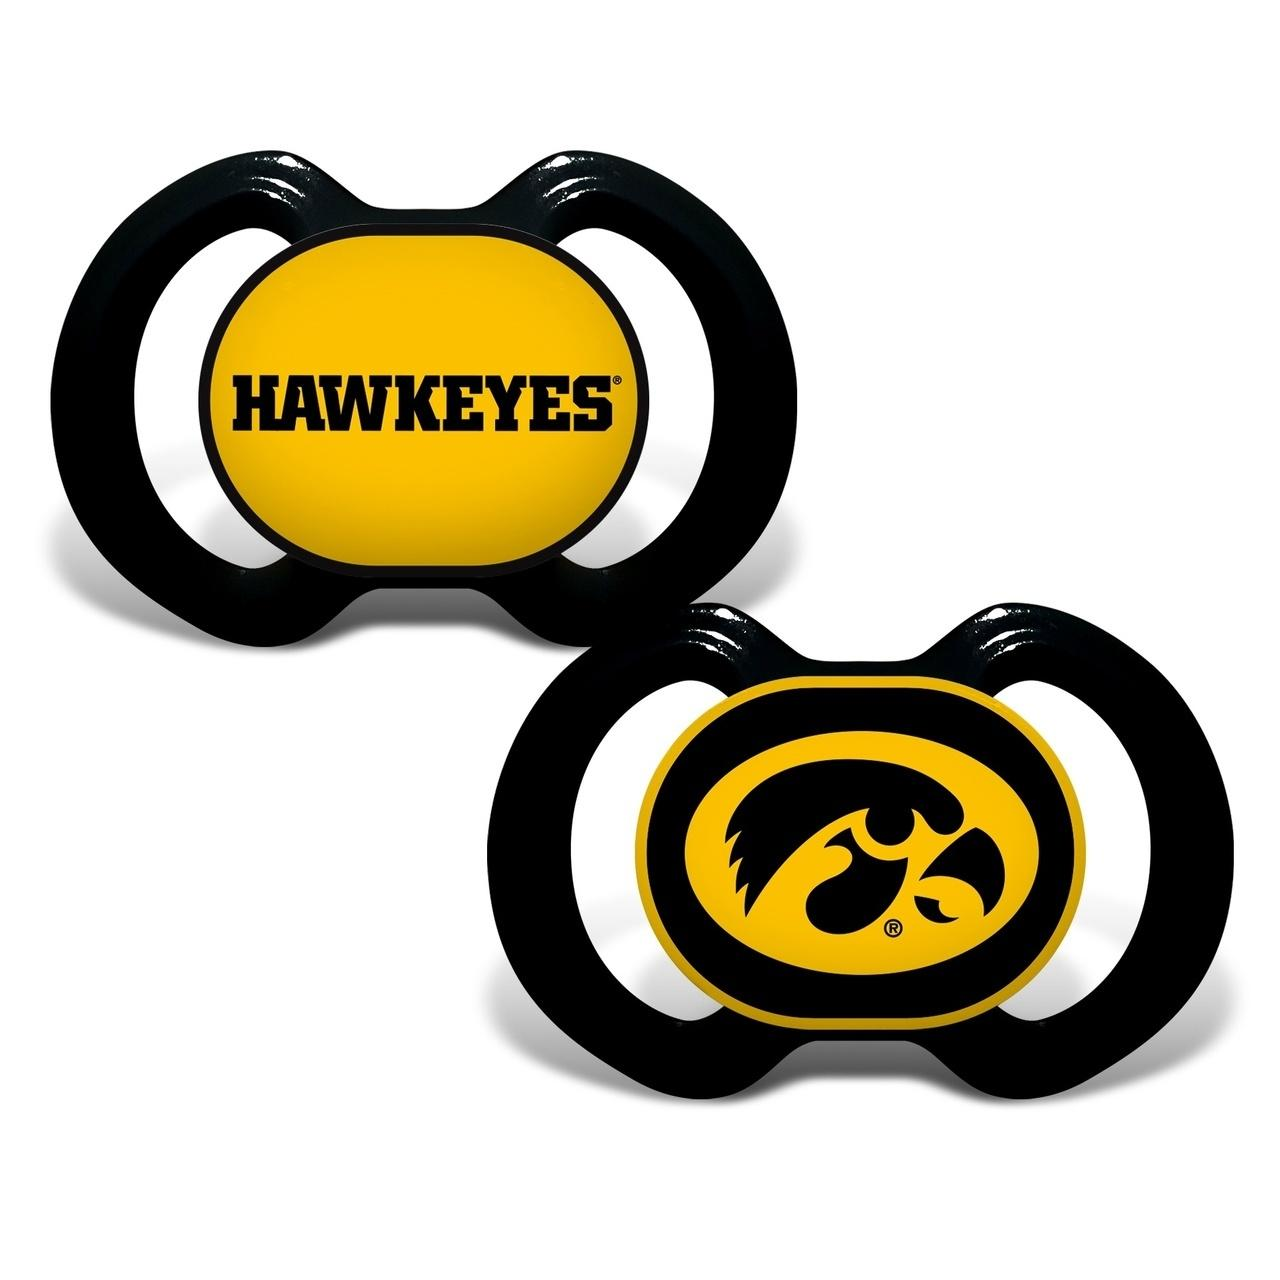 Ncaa College Iowa Iowa Hawkeyes Baby Fan Gear - 1740702193 - Iowa Hawkeyes Pacifier-2 Pack 1740702193